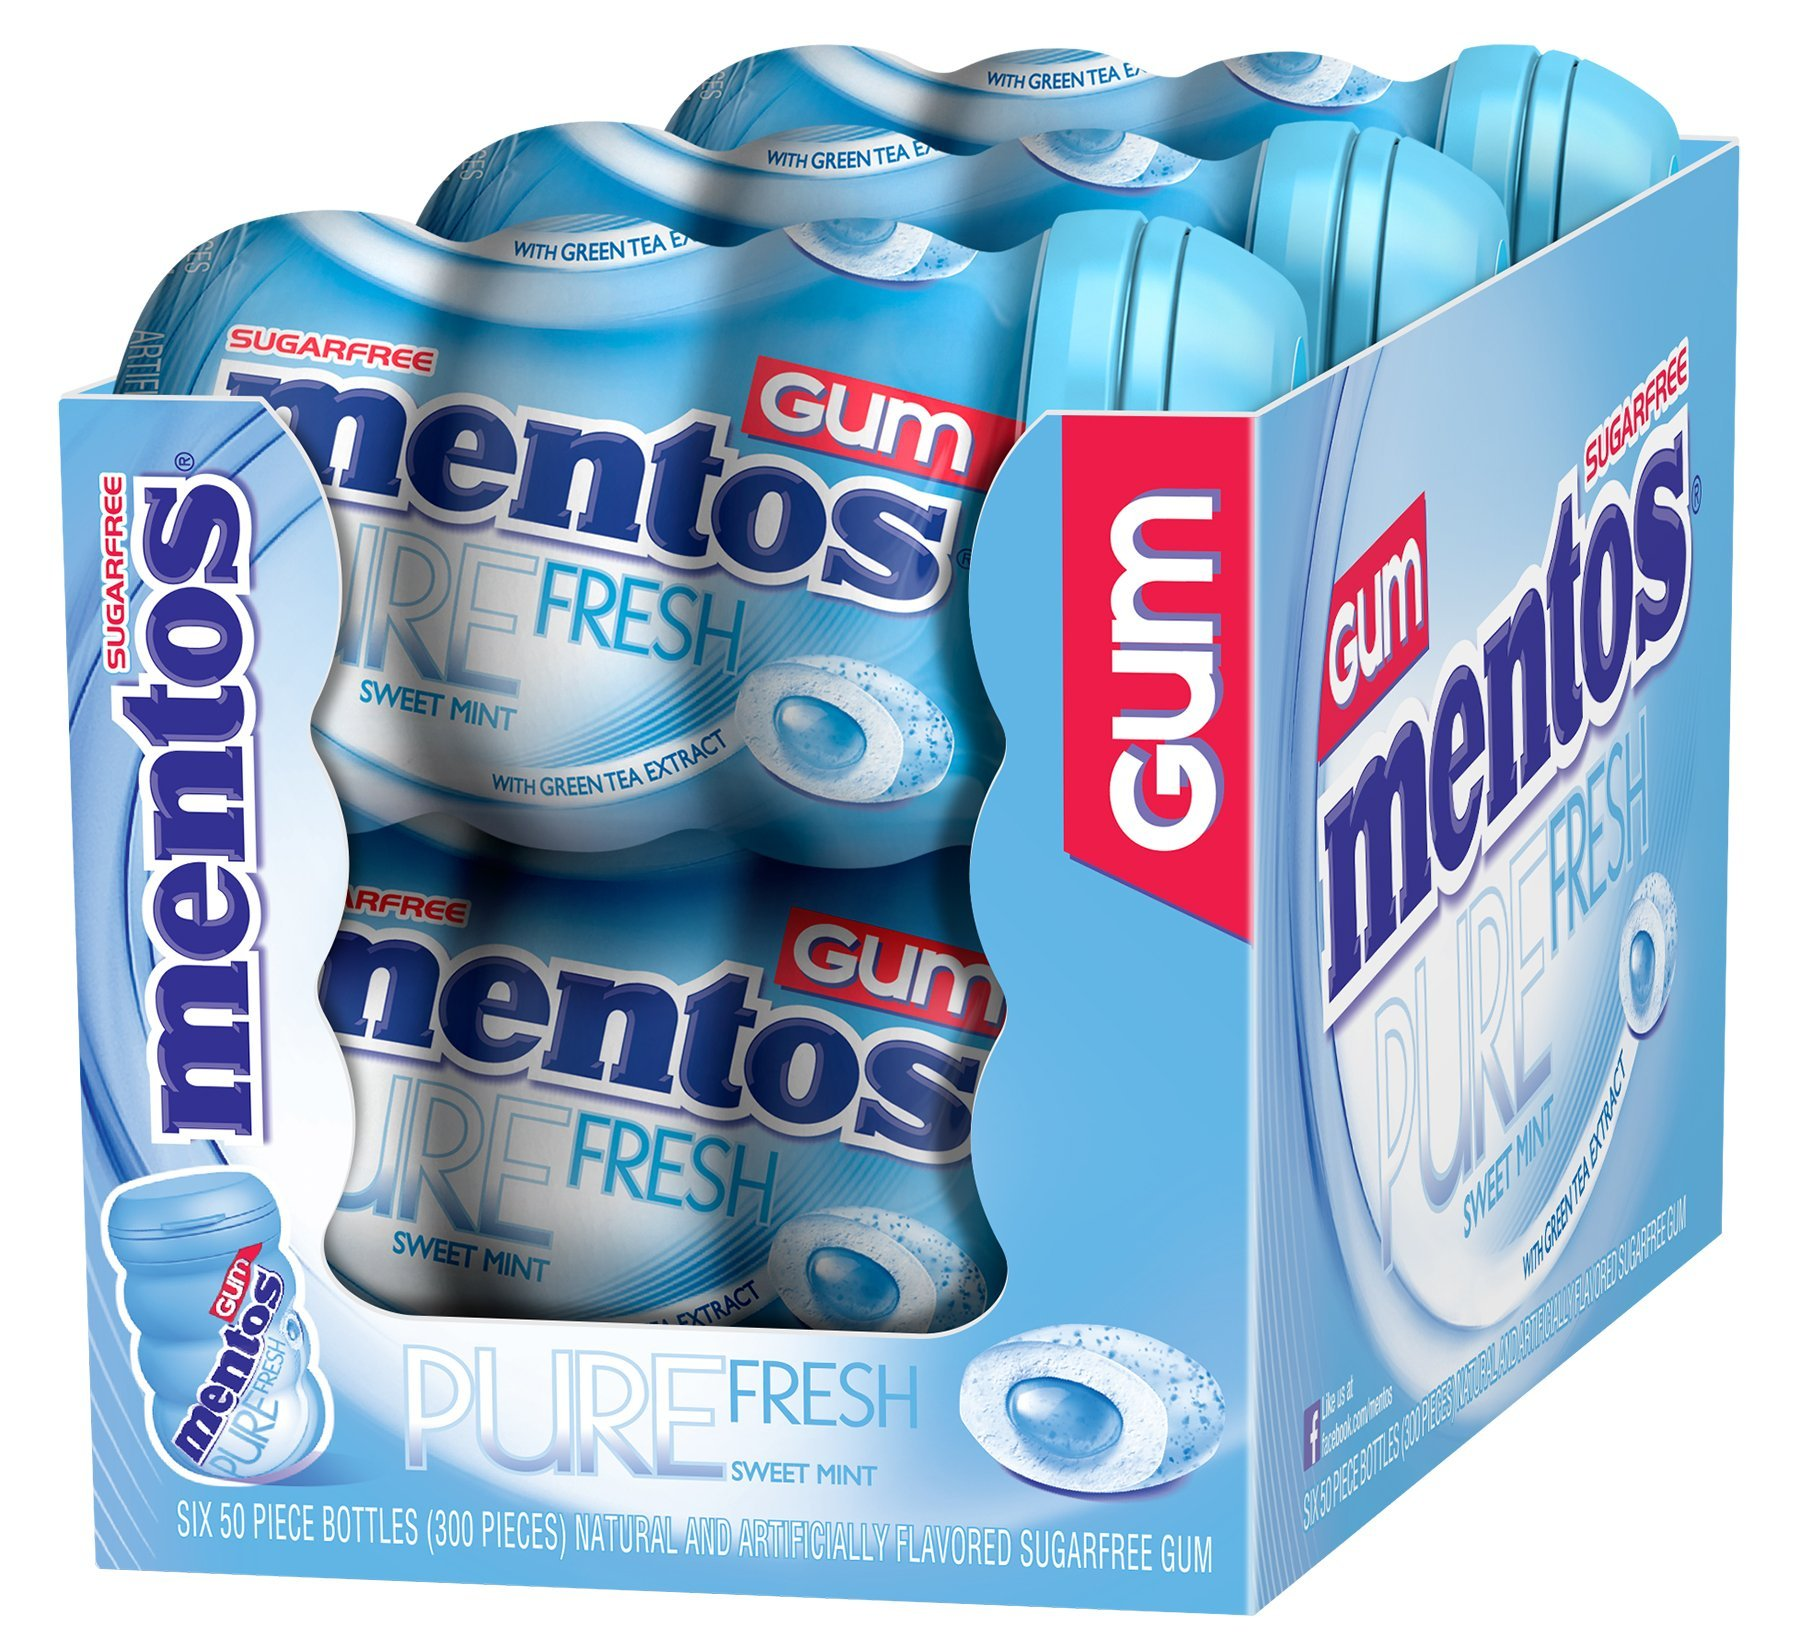 Mentos Pure Fresh Sugar-Free Chewing Gum with Xylitol, Sweet Mint, 50 Piece Bottle (Pack of 6)